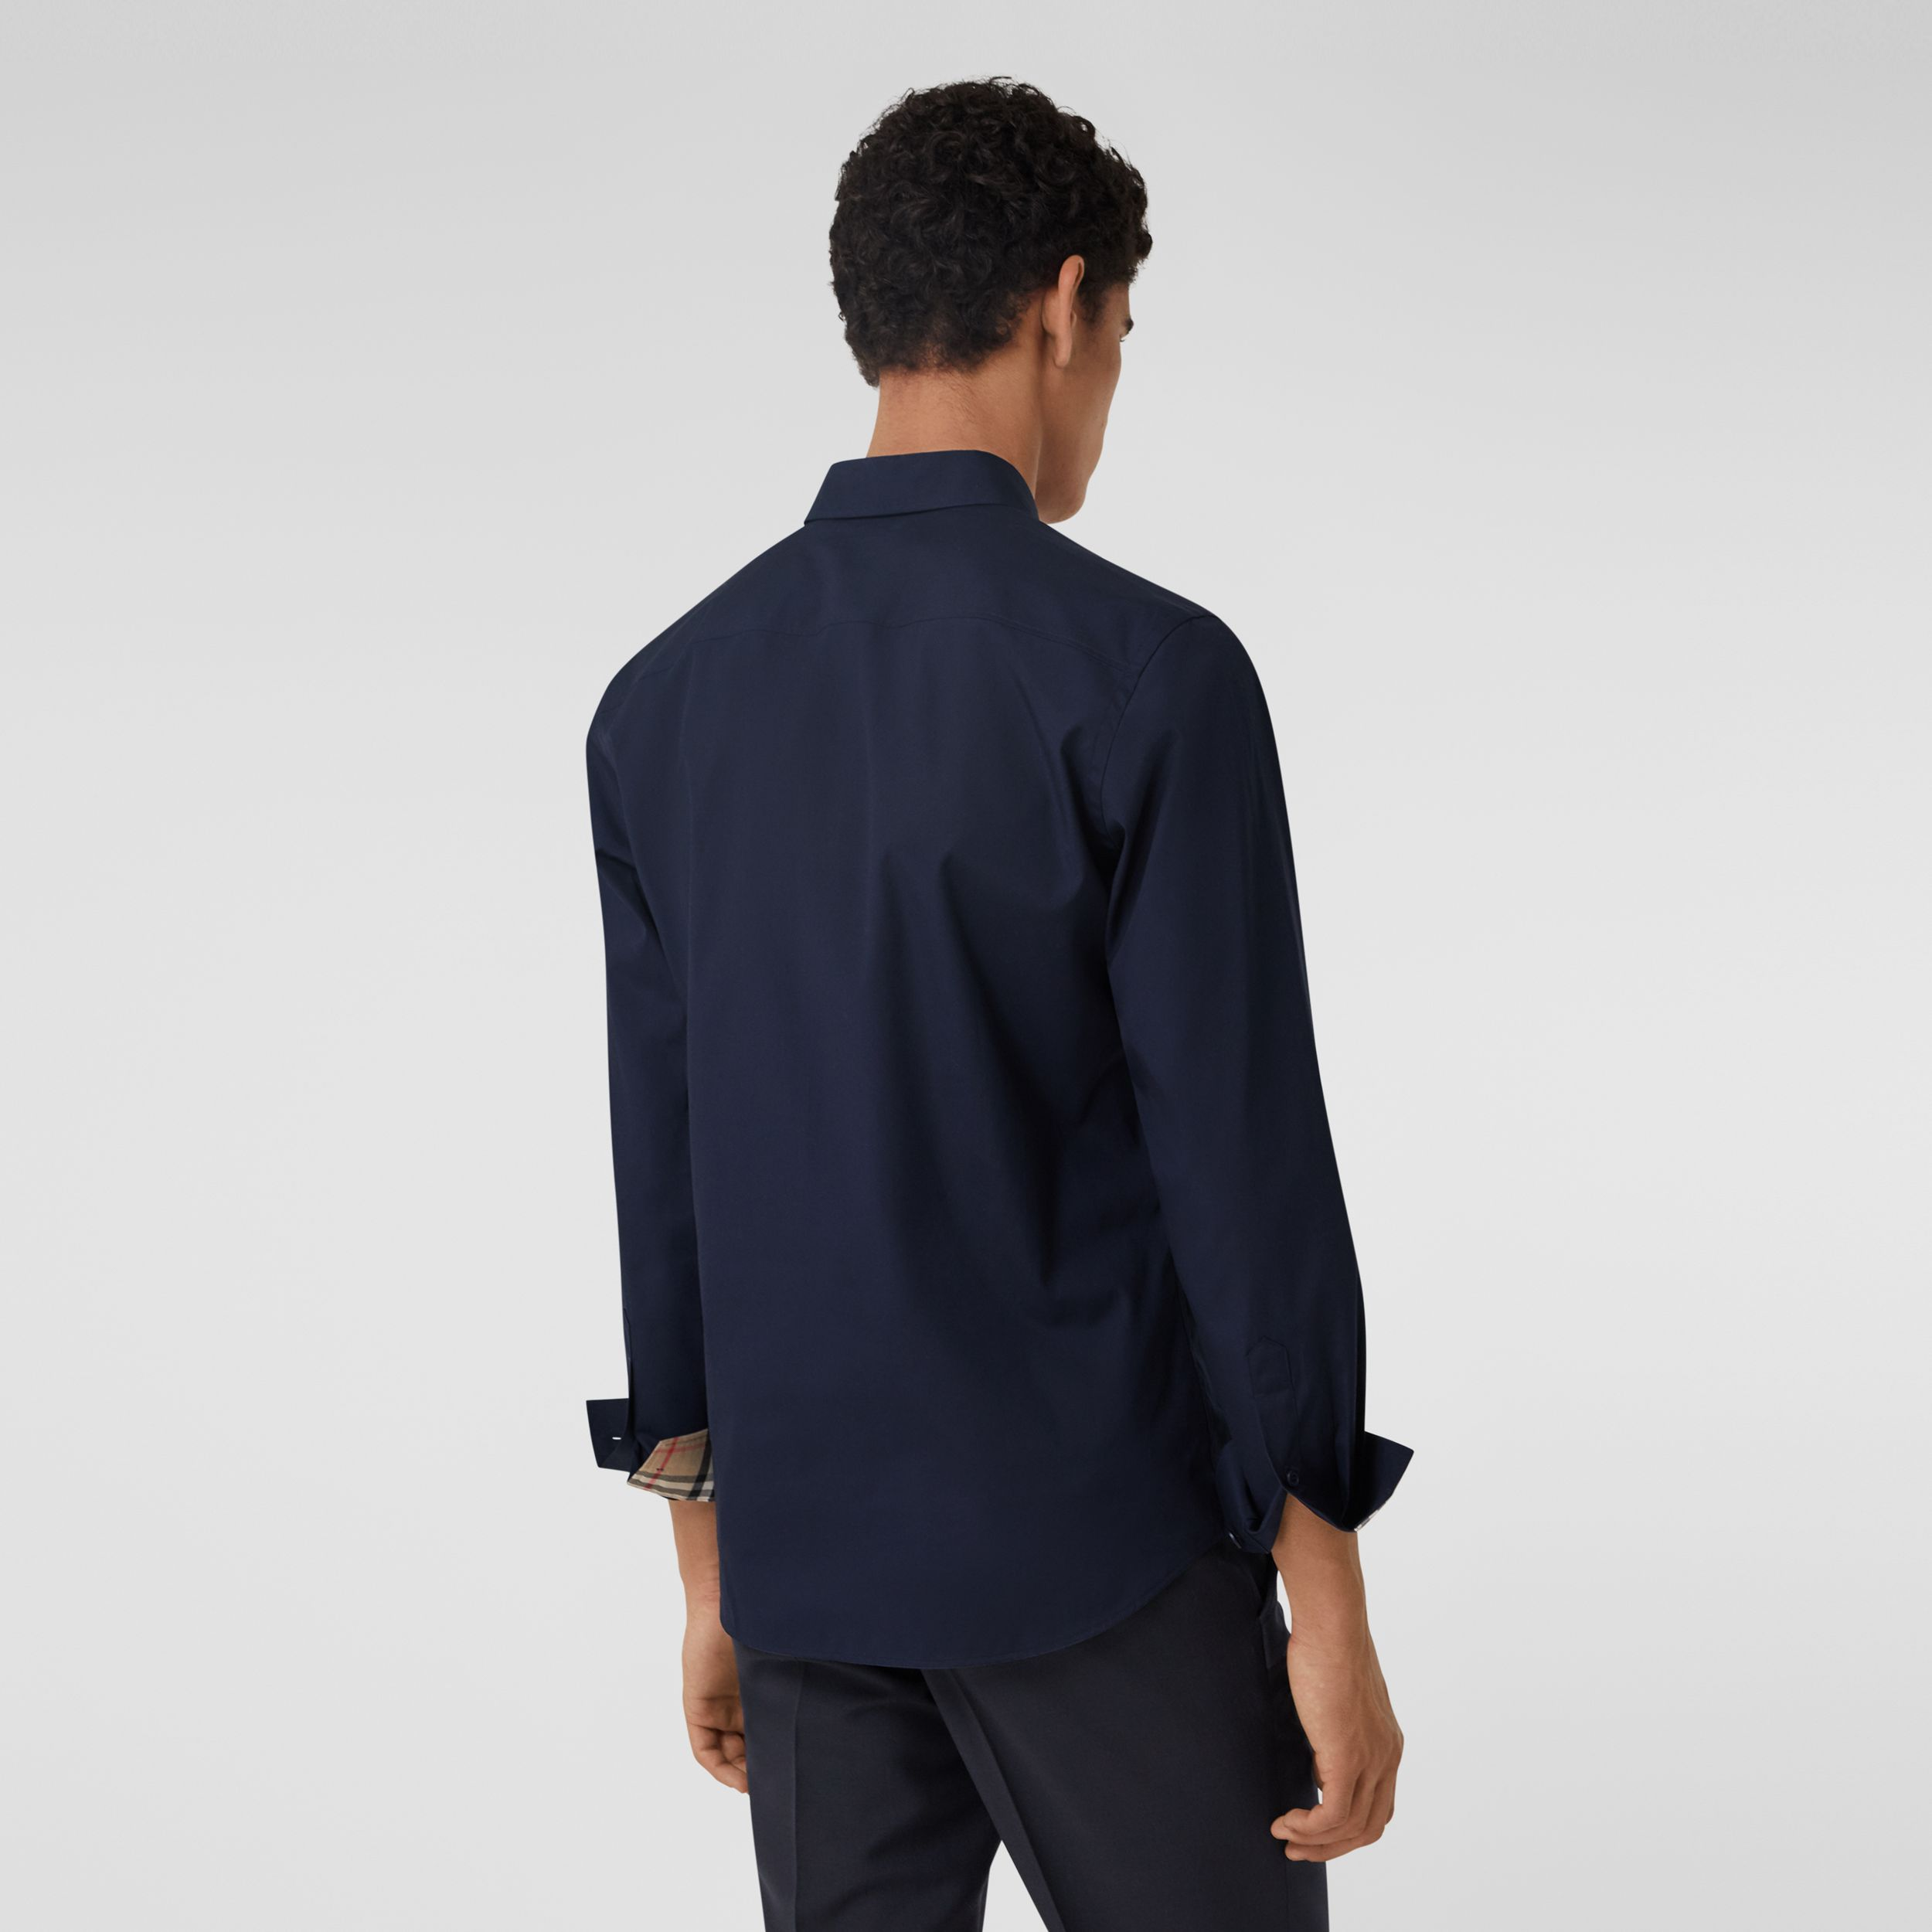 Slim Fit Monogram Motif Stretch Cotton Poplin Shirt in Navy - Men | Burberry Hong Kong S.A.R. - 3